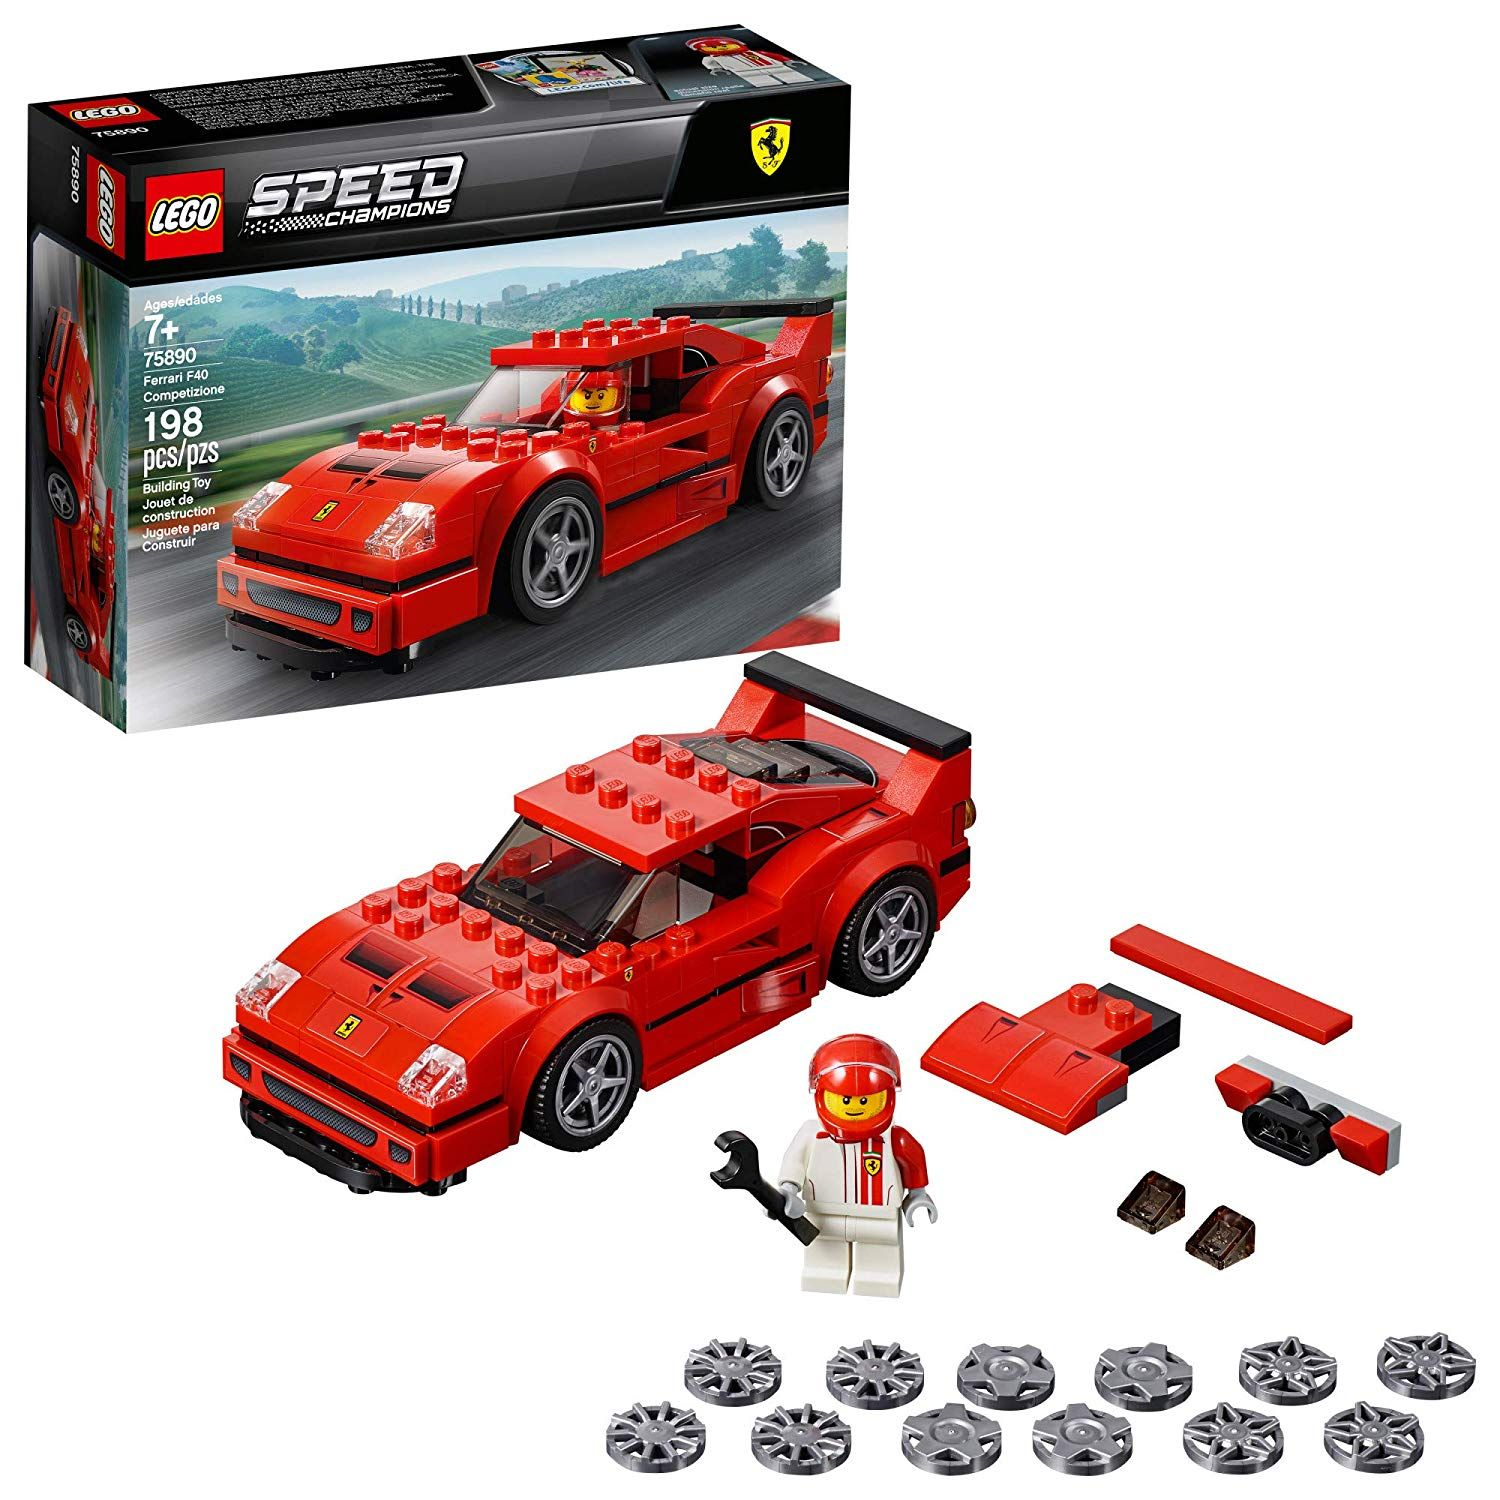 20 Awesome Real Life Cars You Can Buy In Lego Form